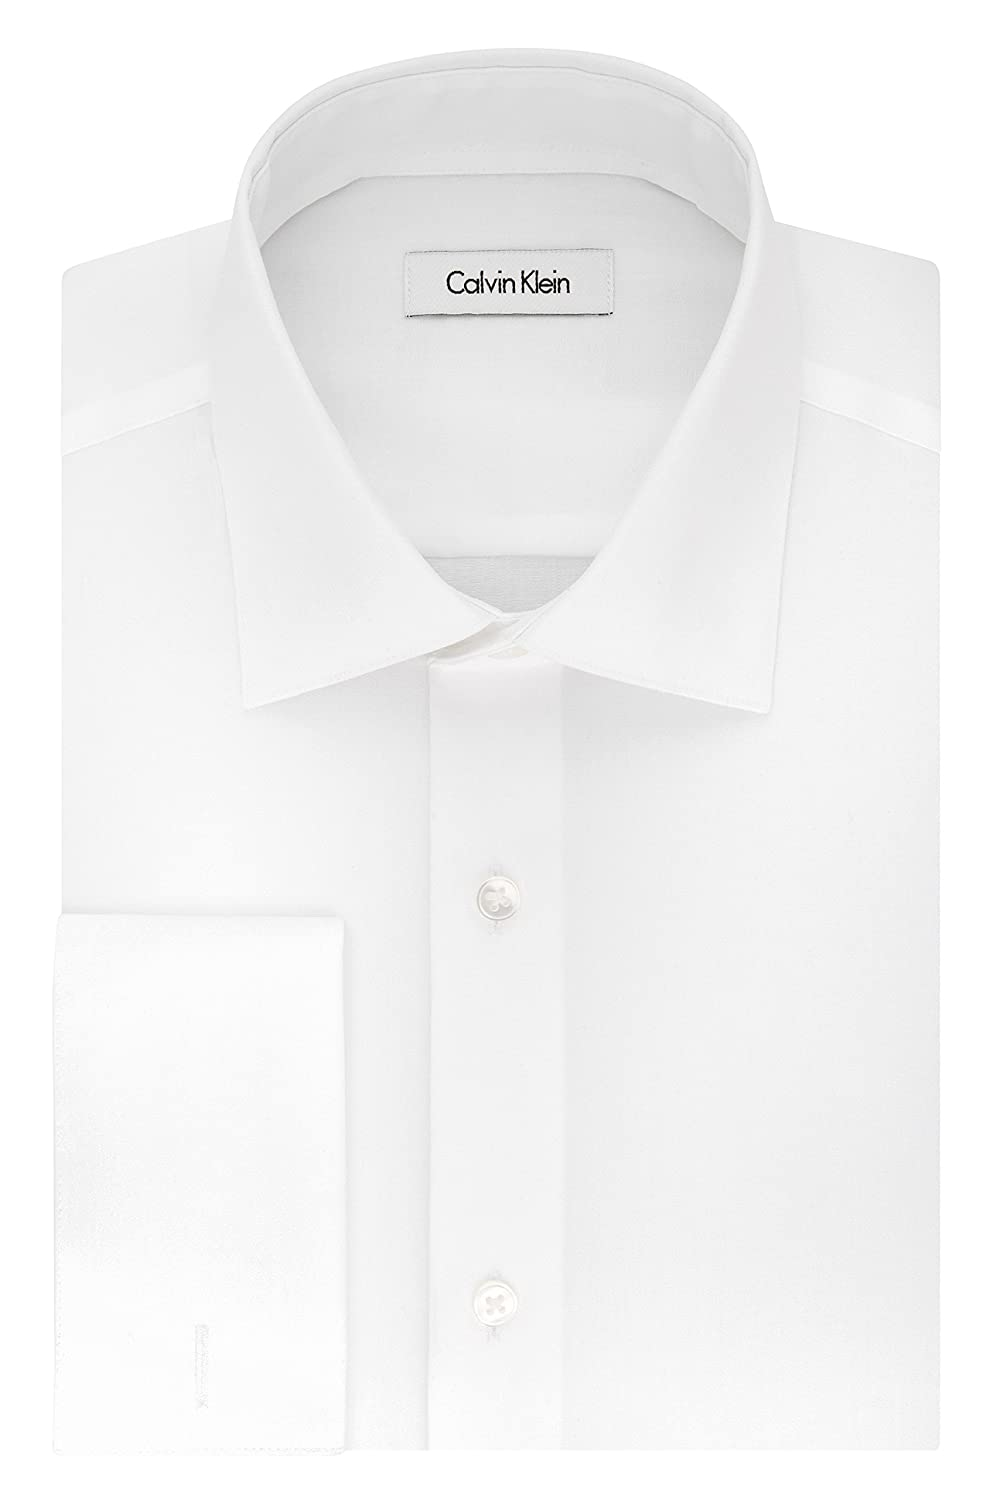 Calvin Klein Mens Dress Shirts French Cuff Shirts for Men Non Iron Regular Fit Herringbone Solid Spread Collar Calvin Klein Dress Shirts 33K3339